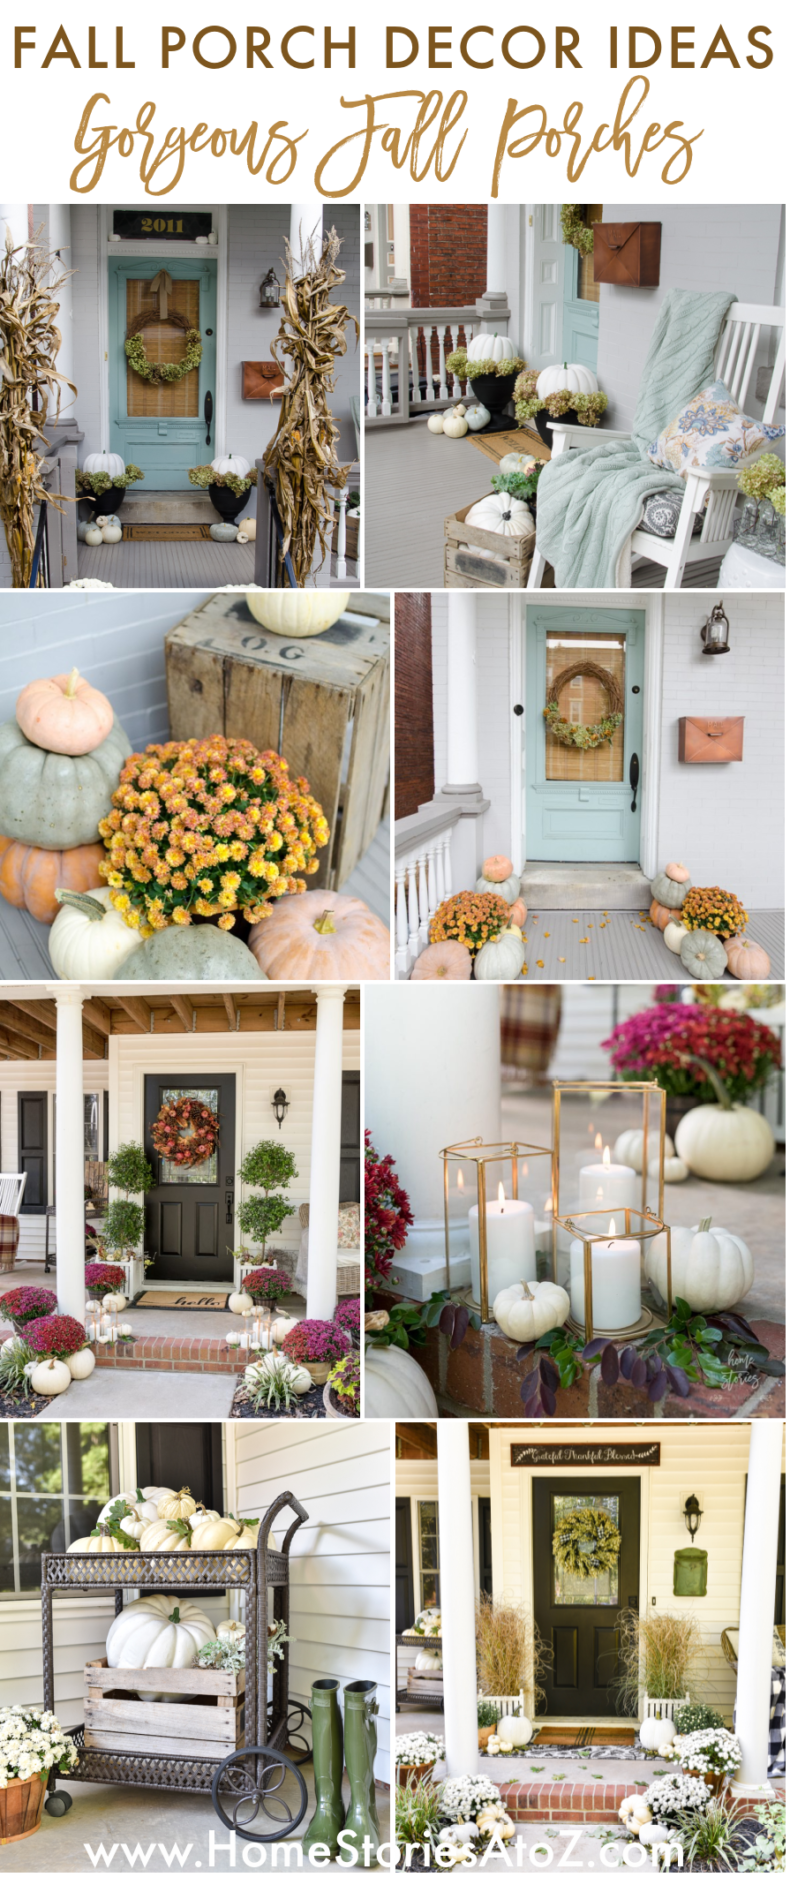 Fall Porch Ideas by Home Stories A to Z